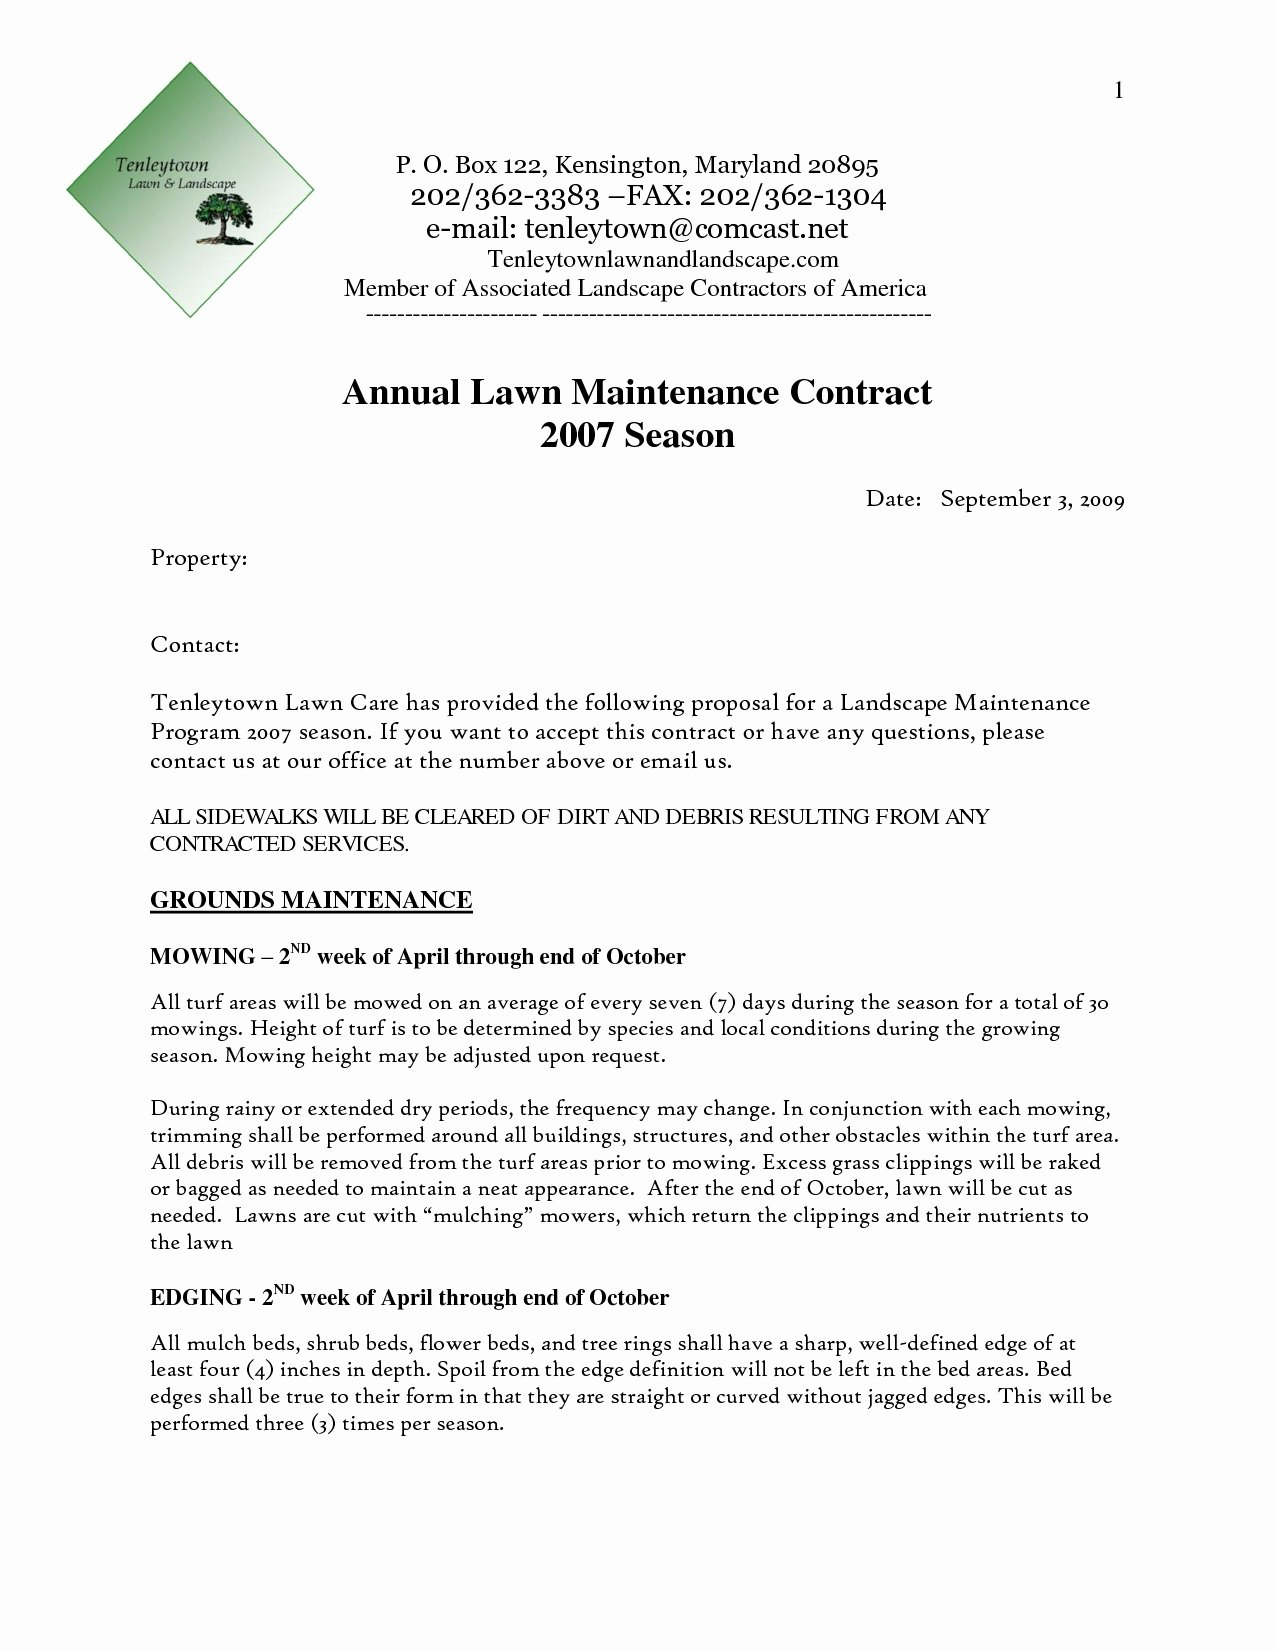 Free Bid Proposal Template Best Of Landscaping Bid Templates